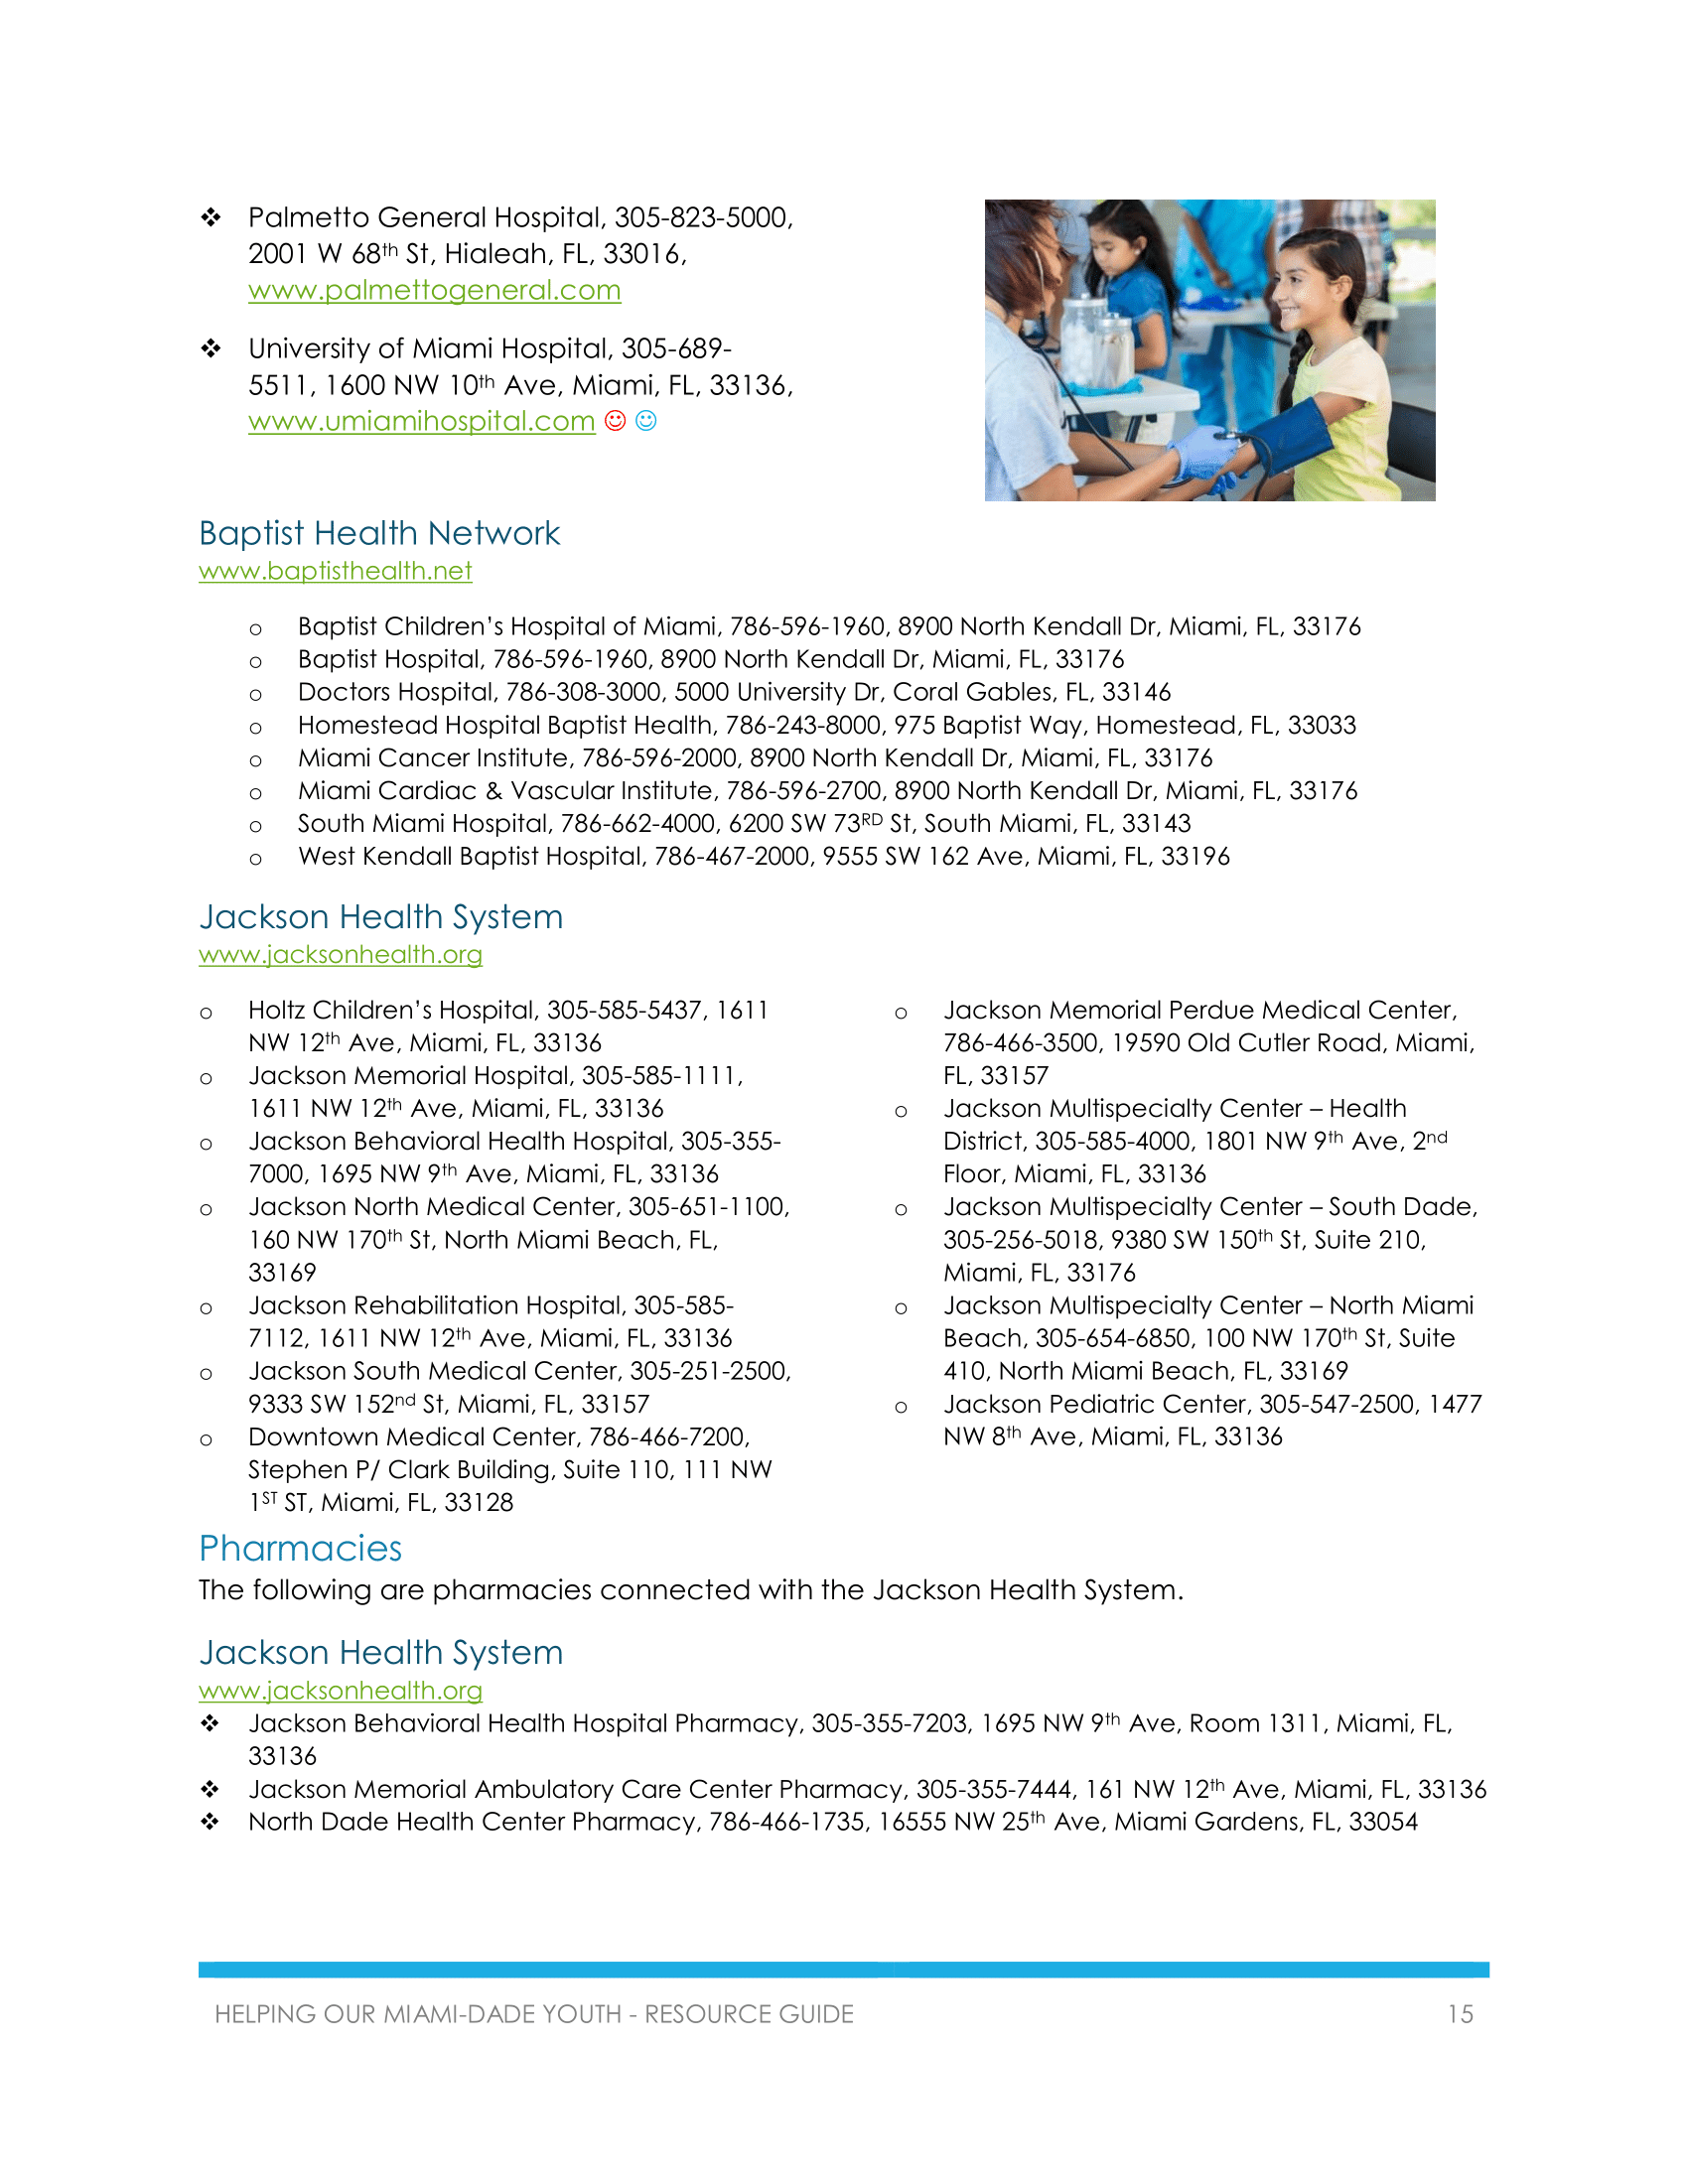 Youth Resource Guide - May 2018-20.png